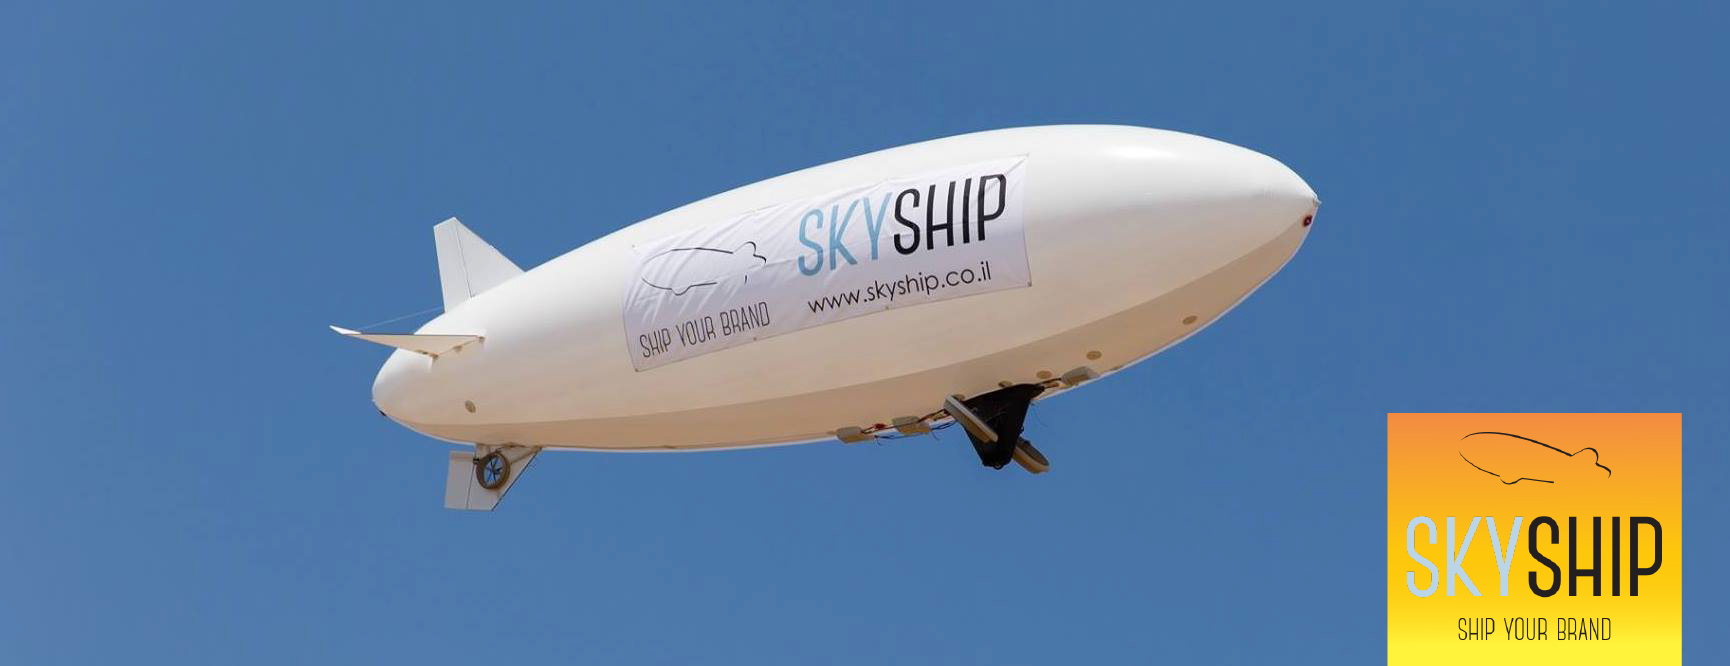 About Skyship